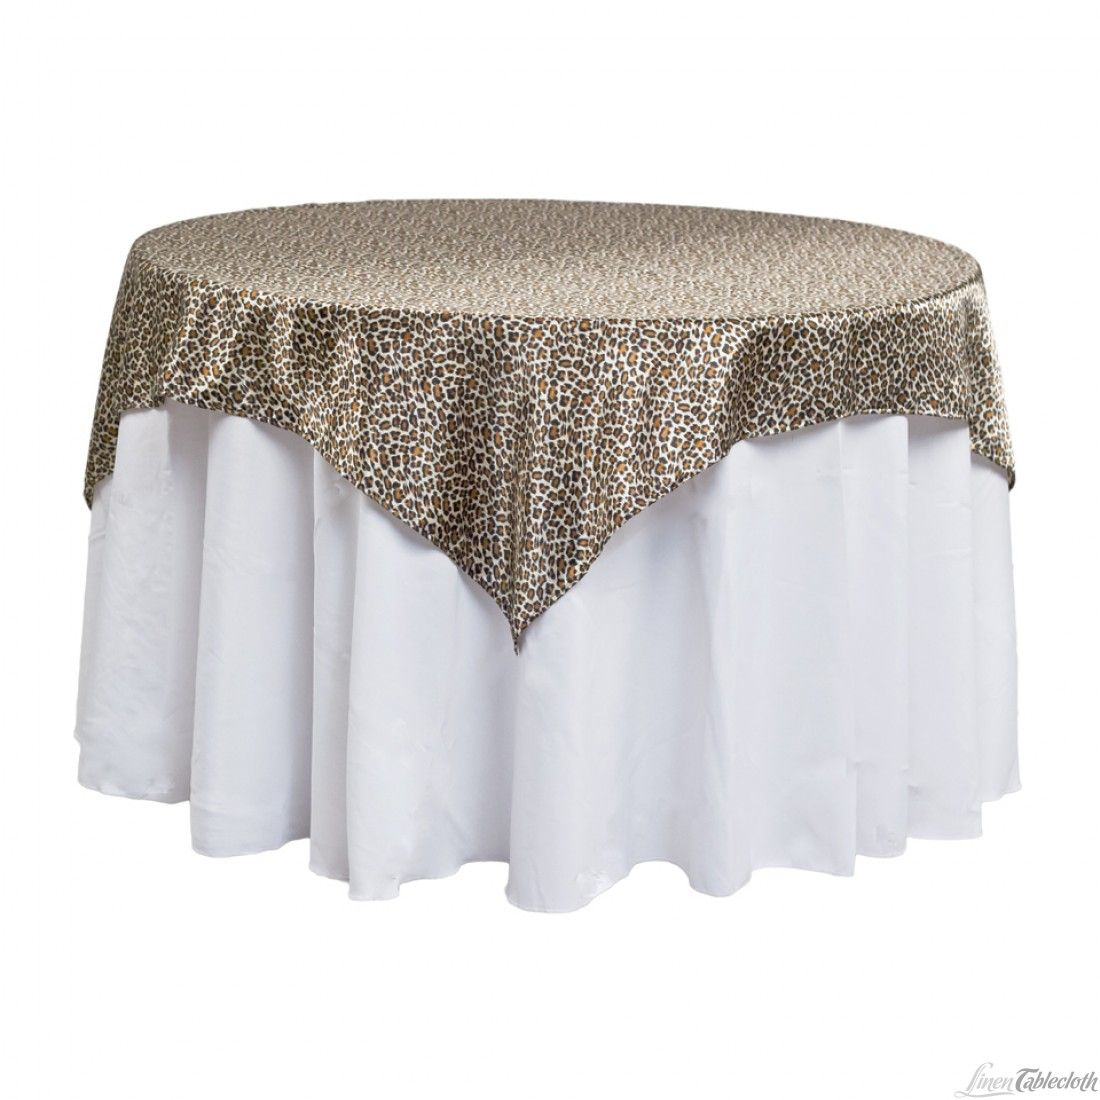 60 In Square Satin Overlay Leopard Print For Weddings At